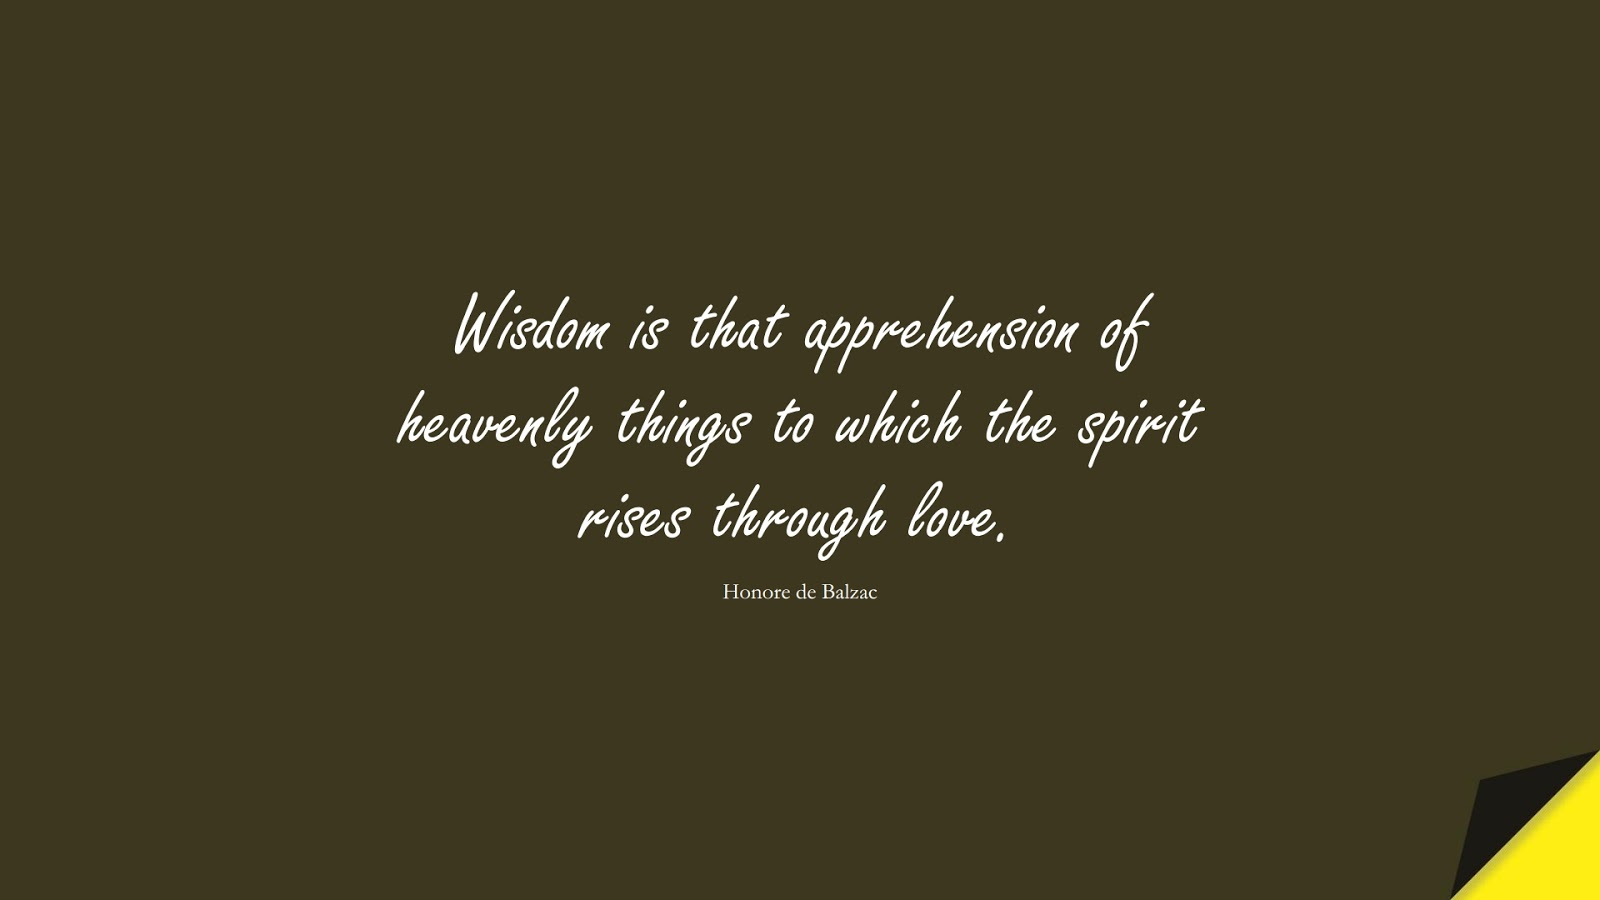 Wisdom is that apprehension of heavenly things to which the spirit rises through love. (Honore de Balzac);  #WordsofWisdom